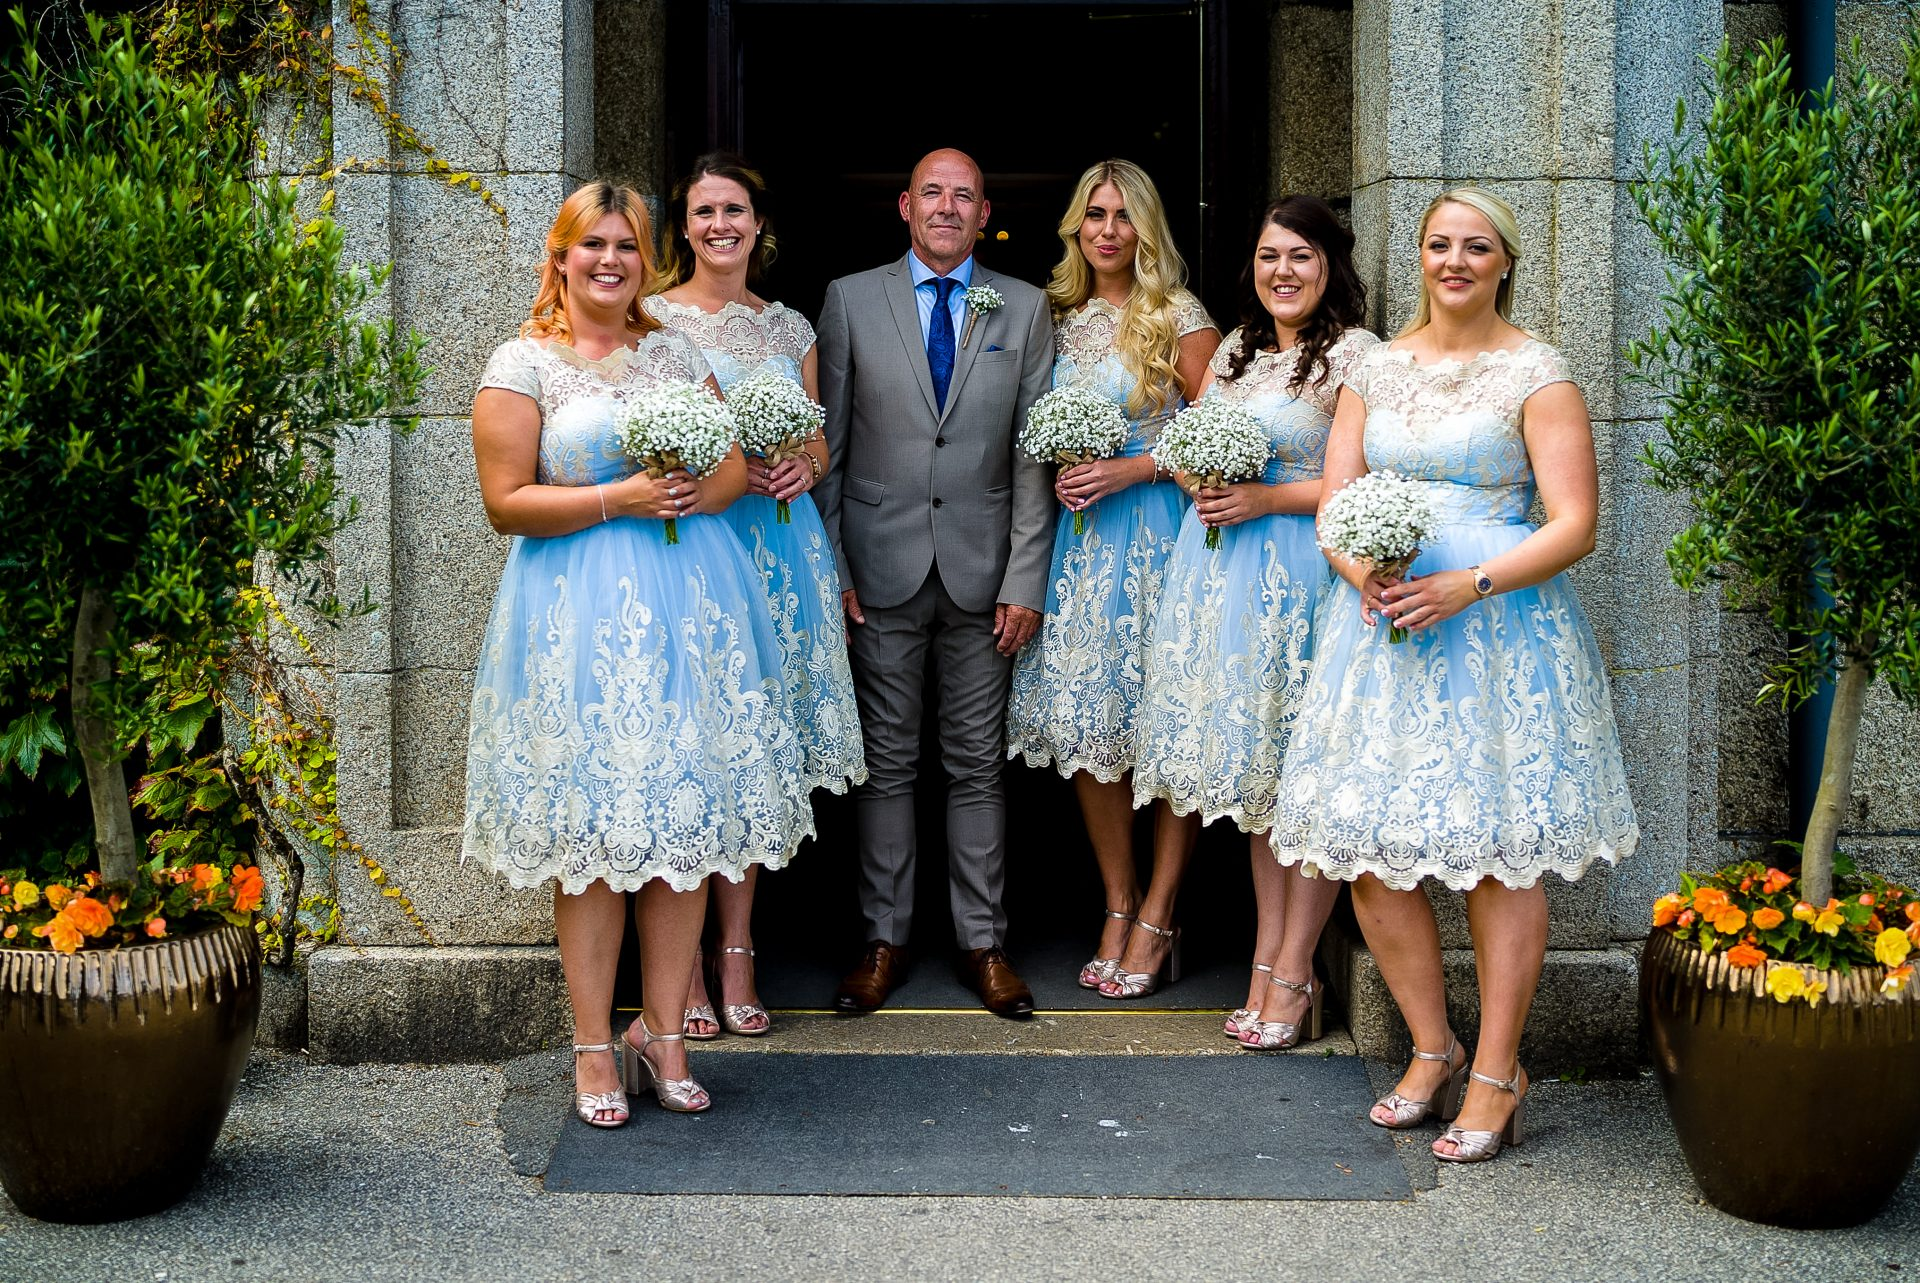 YFFUK Phil Endicott Pinto Tregenna Castle St Ives bridesmaids with father of the bride